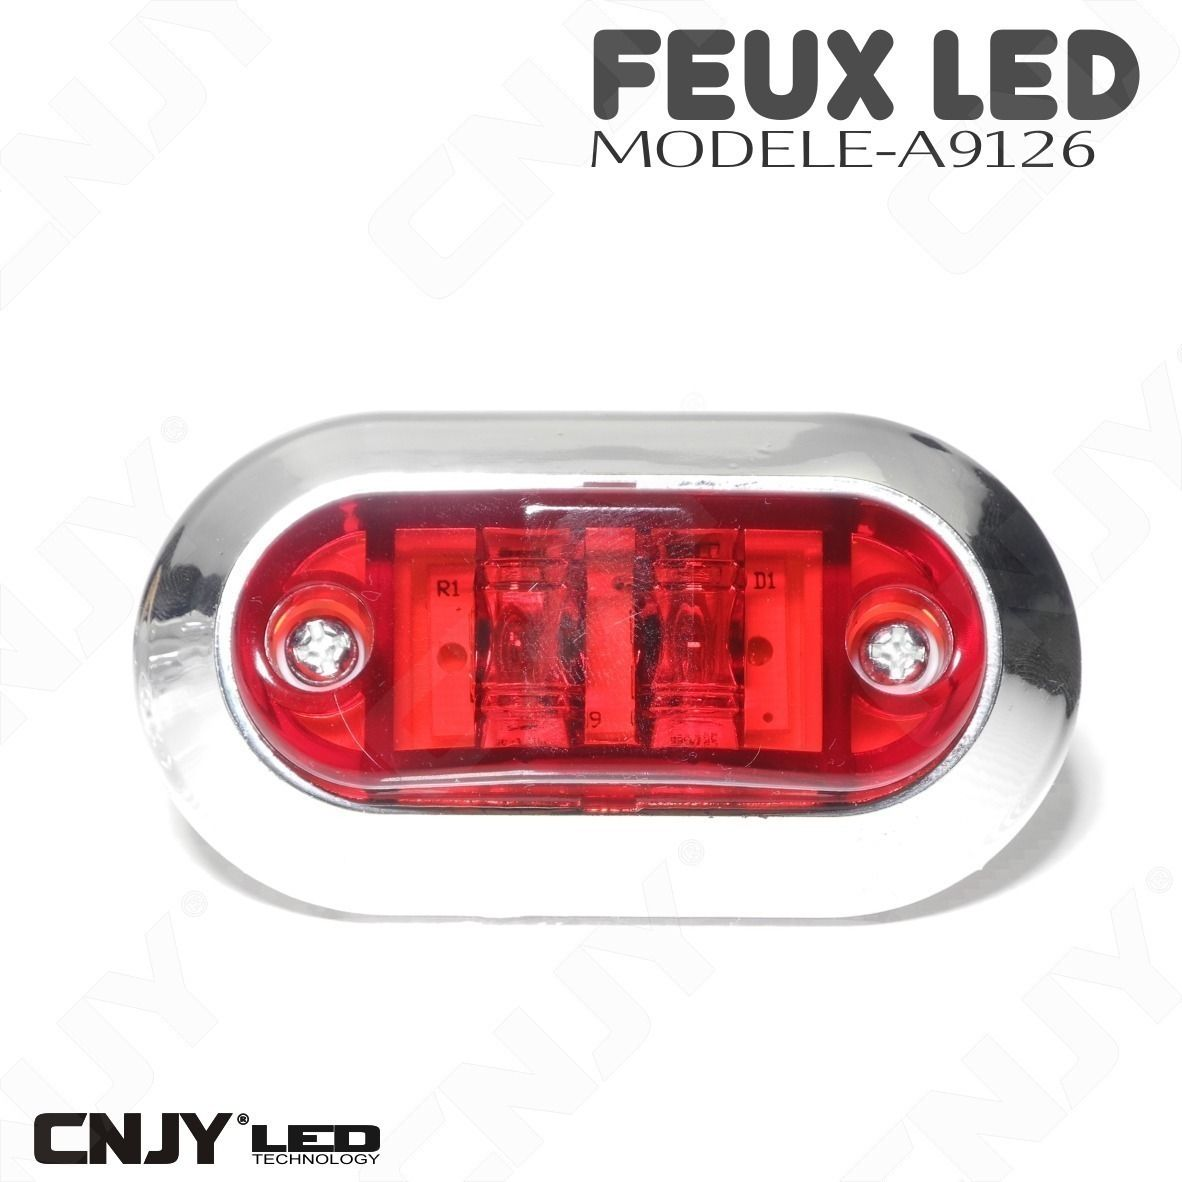 feux de gabarit led rouge puissant remorque auto camion 12 24v ip68 7 46 chez cnjy led fr. Black Bedroom Furniture Sets. Home Design Ideas